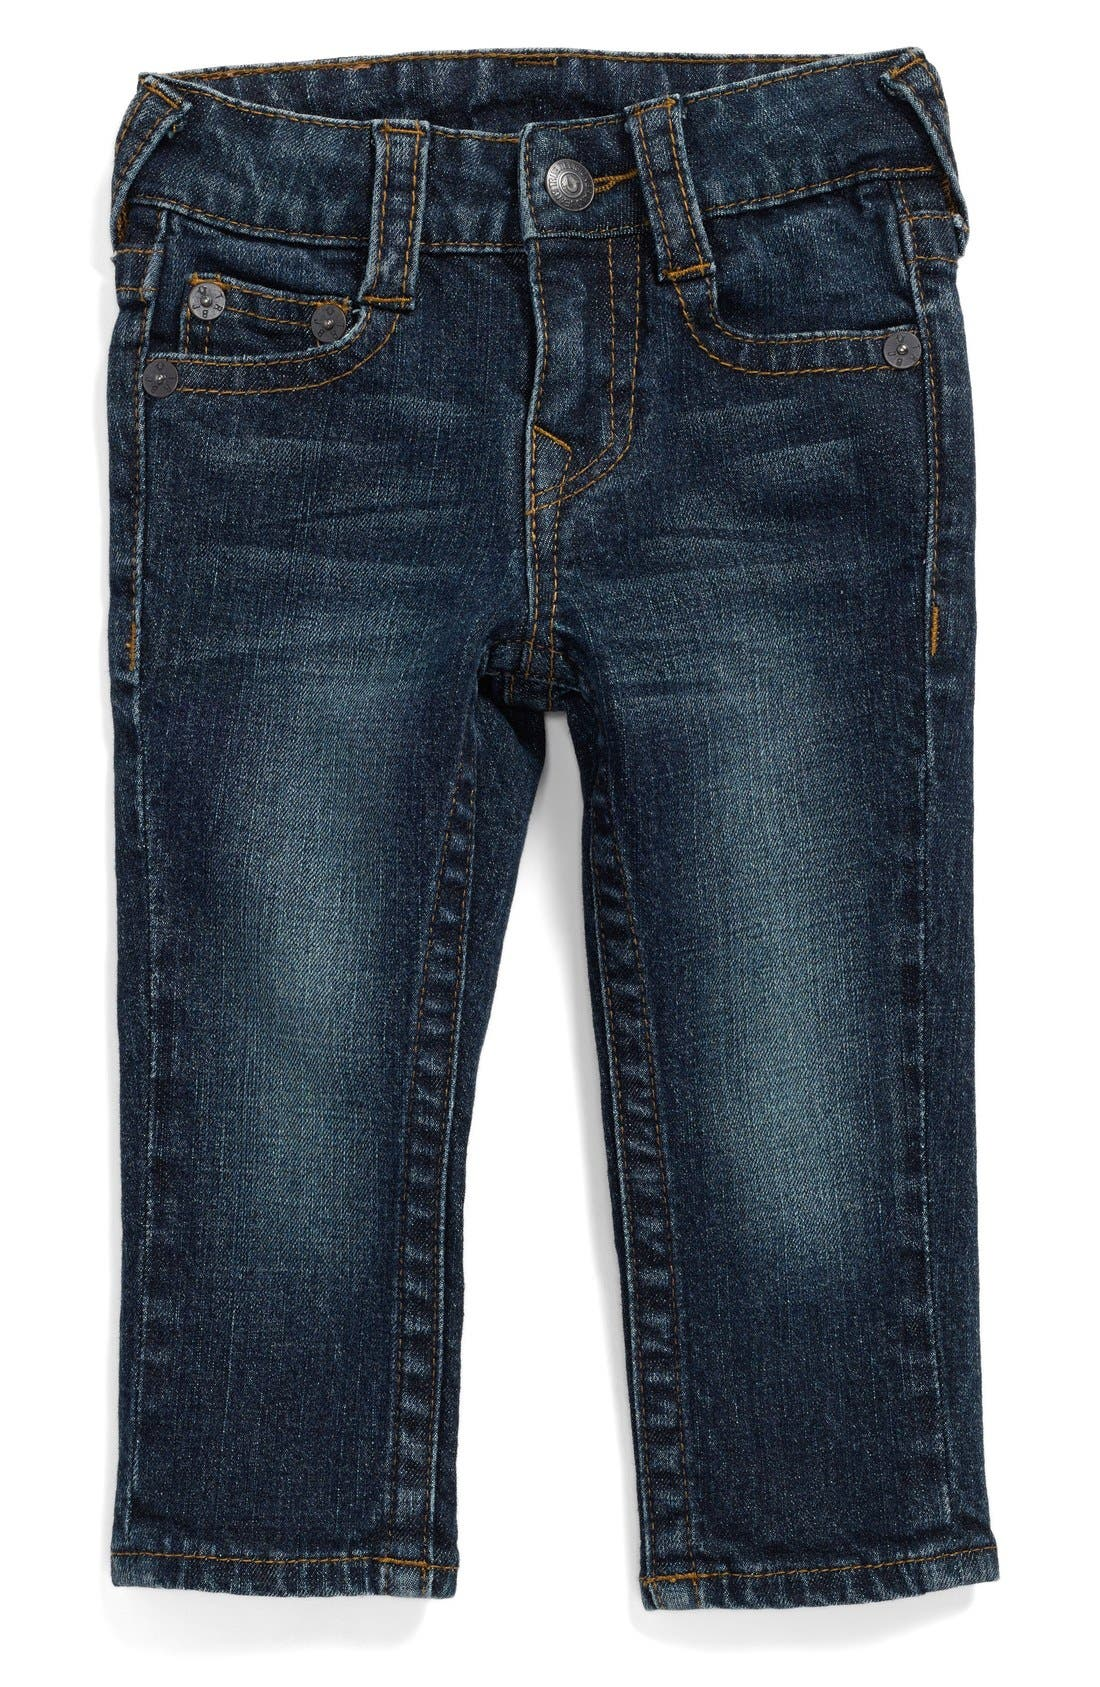 TRUE RELIGION BRAND JEANS 'Geno' Relaxed Slim Fit